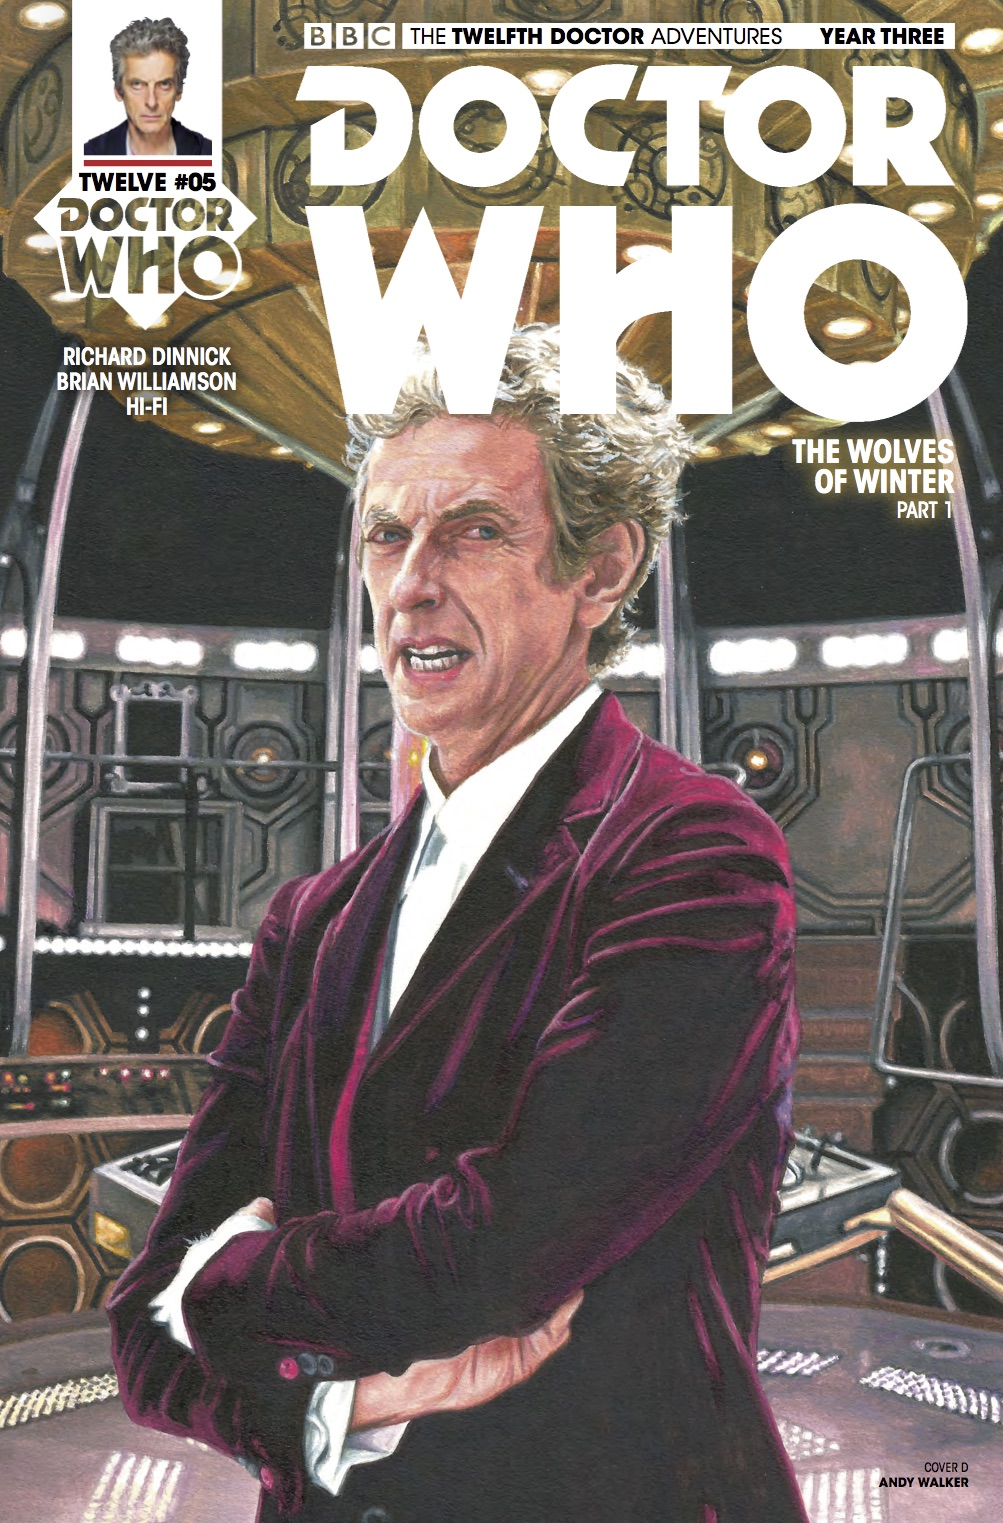 Doctor Who 12th Year Three #5 Cover D (Credit: Titan / Andy​ Walker)